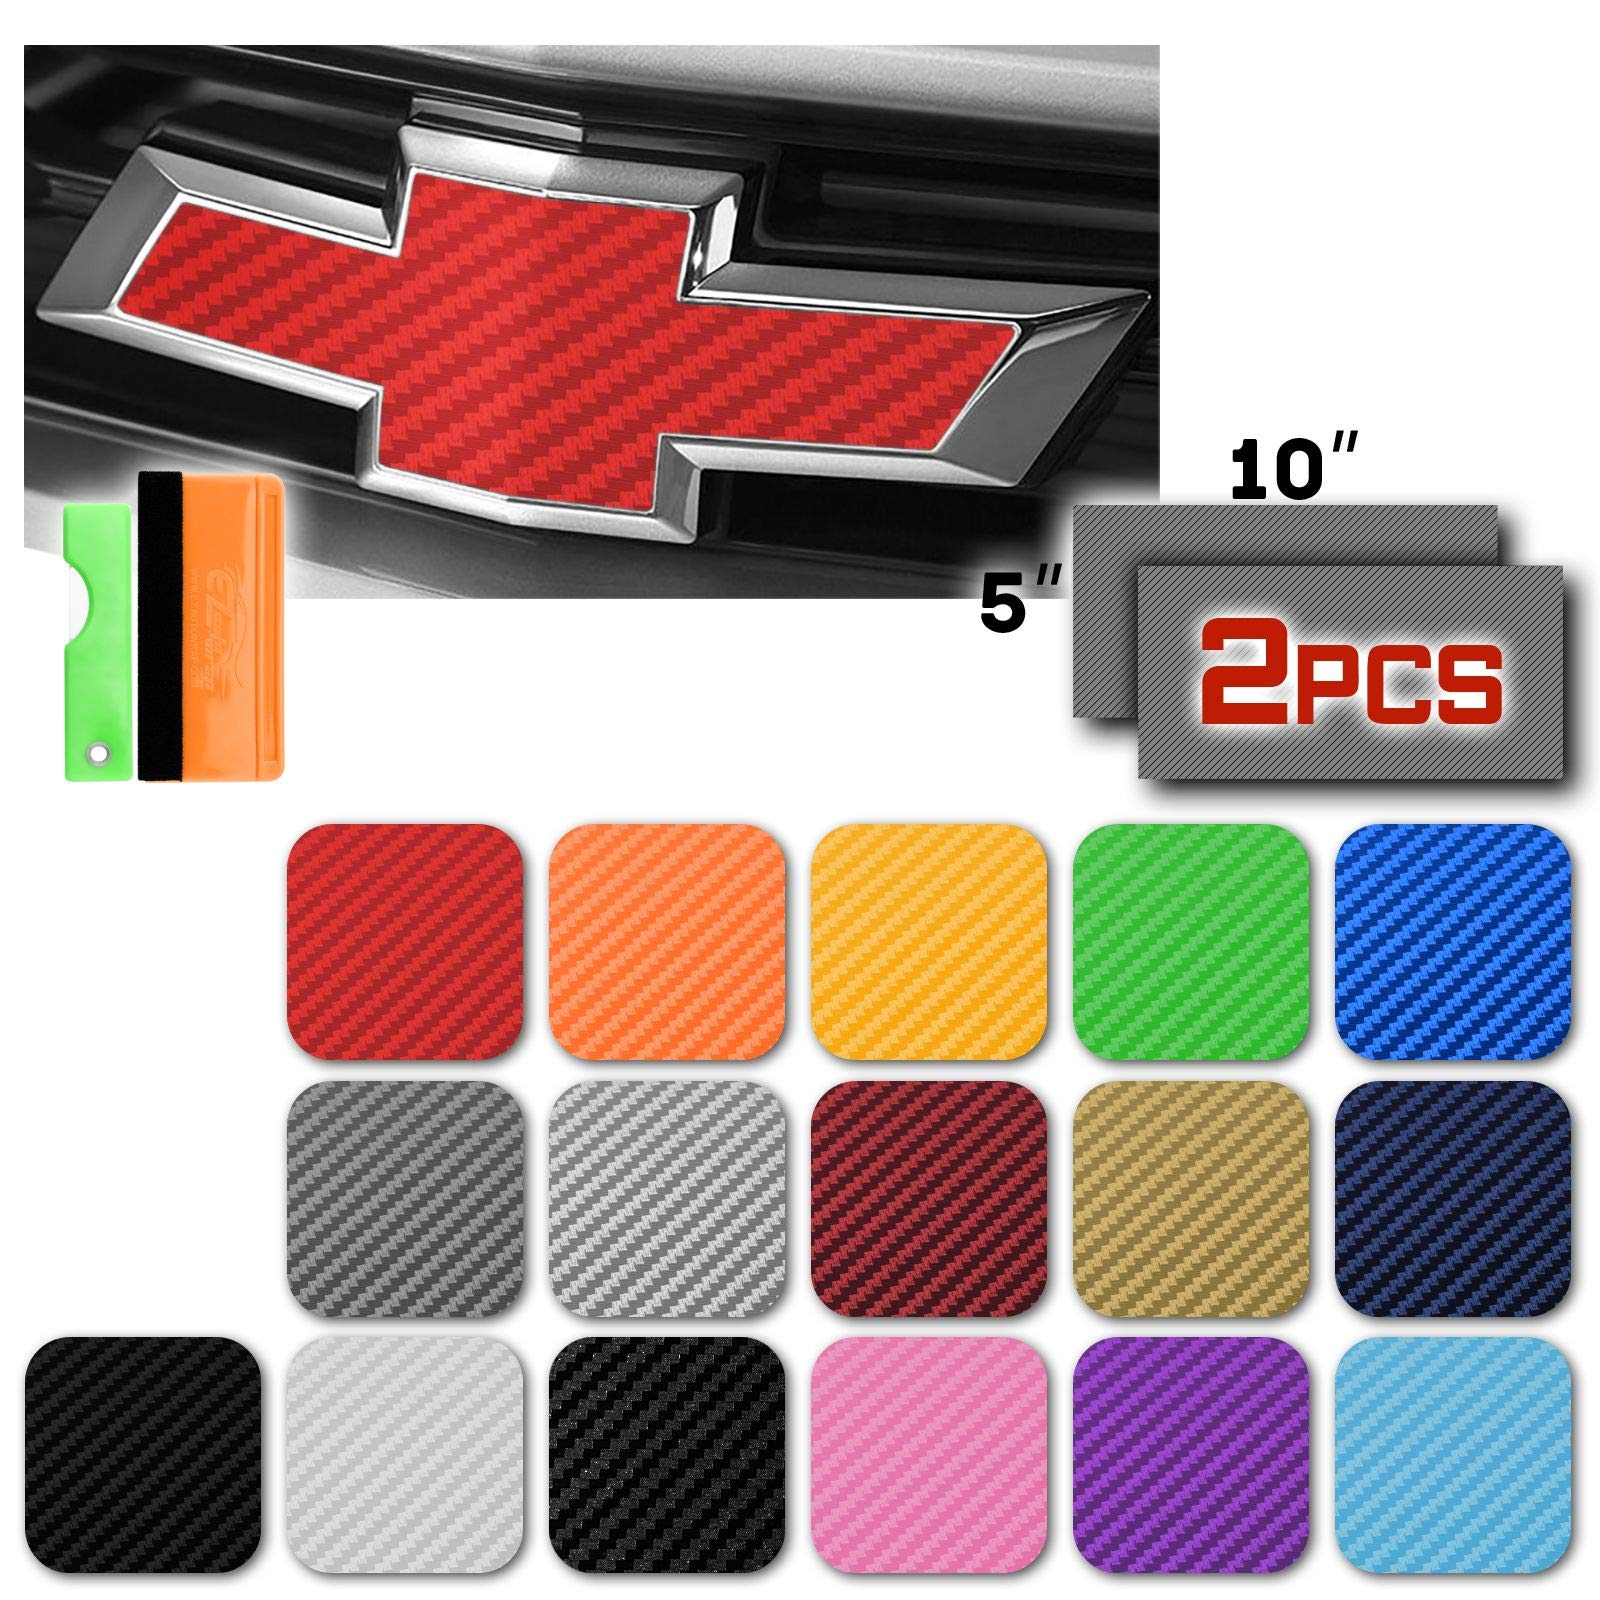 EZAUTOWRAP Free Tool Kit 2Pcs 5x10 Chevy Emblem Bowtie Satin Chrome Black Vinyl Wrap Sticker Decal Film Sheet